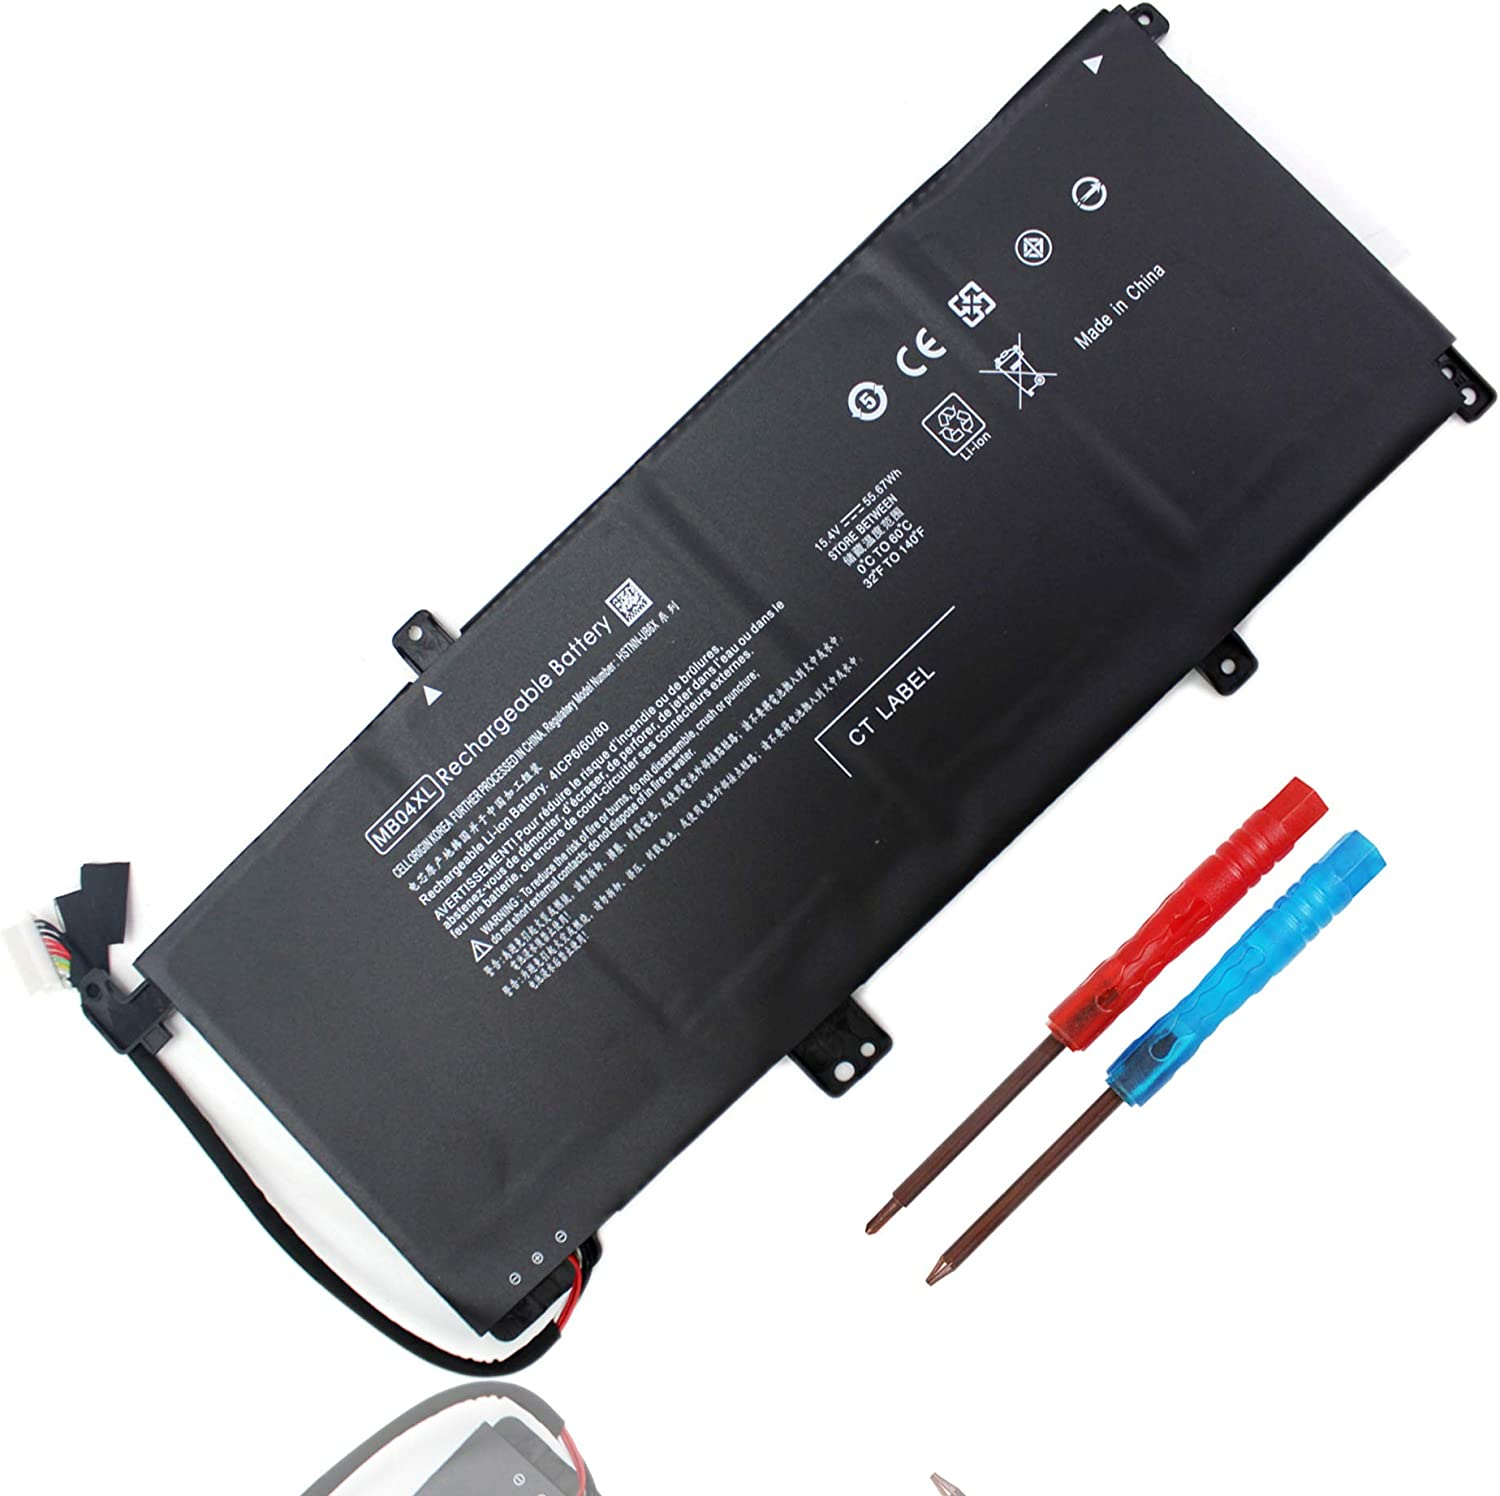 844204-850 MB04XL Battery for Reservation HP Convertible Bargain Envy m6-aq0 X360 PC